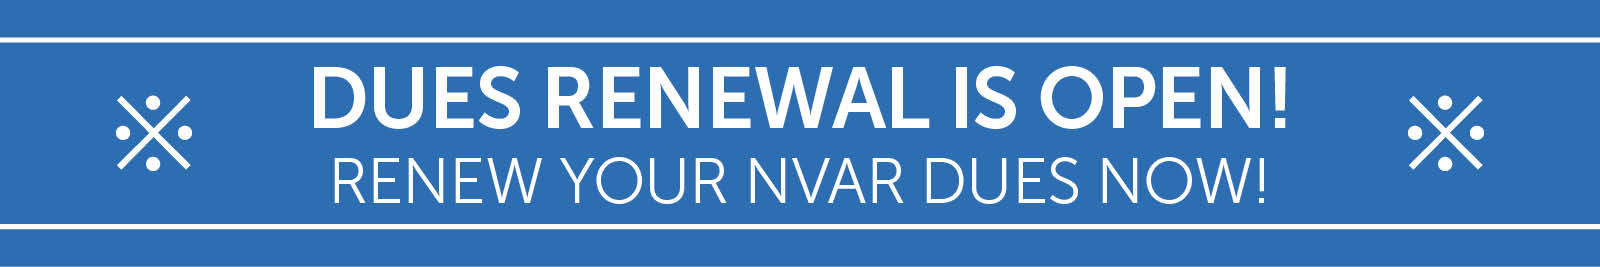 dues renewal is now open. Renew your NVAR Dues now